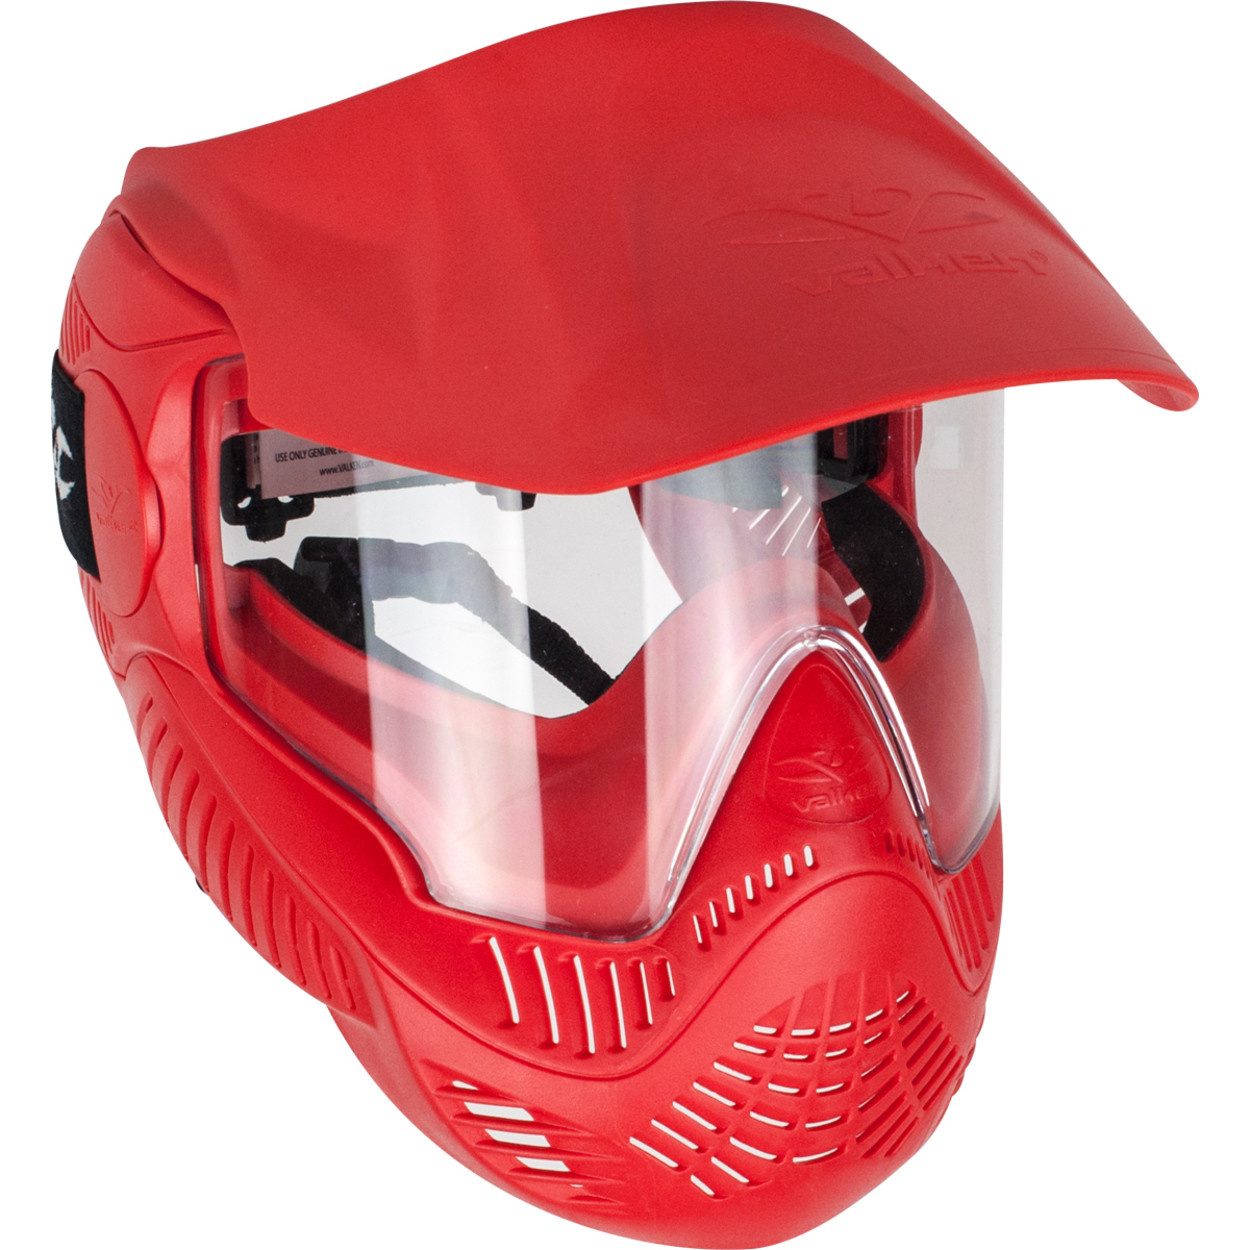 Valken Gotcha MI-3 Thermal Glass Mask - Red & Blue